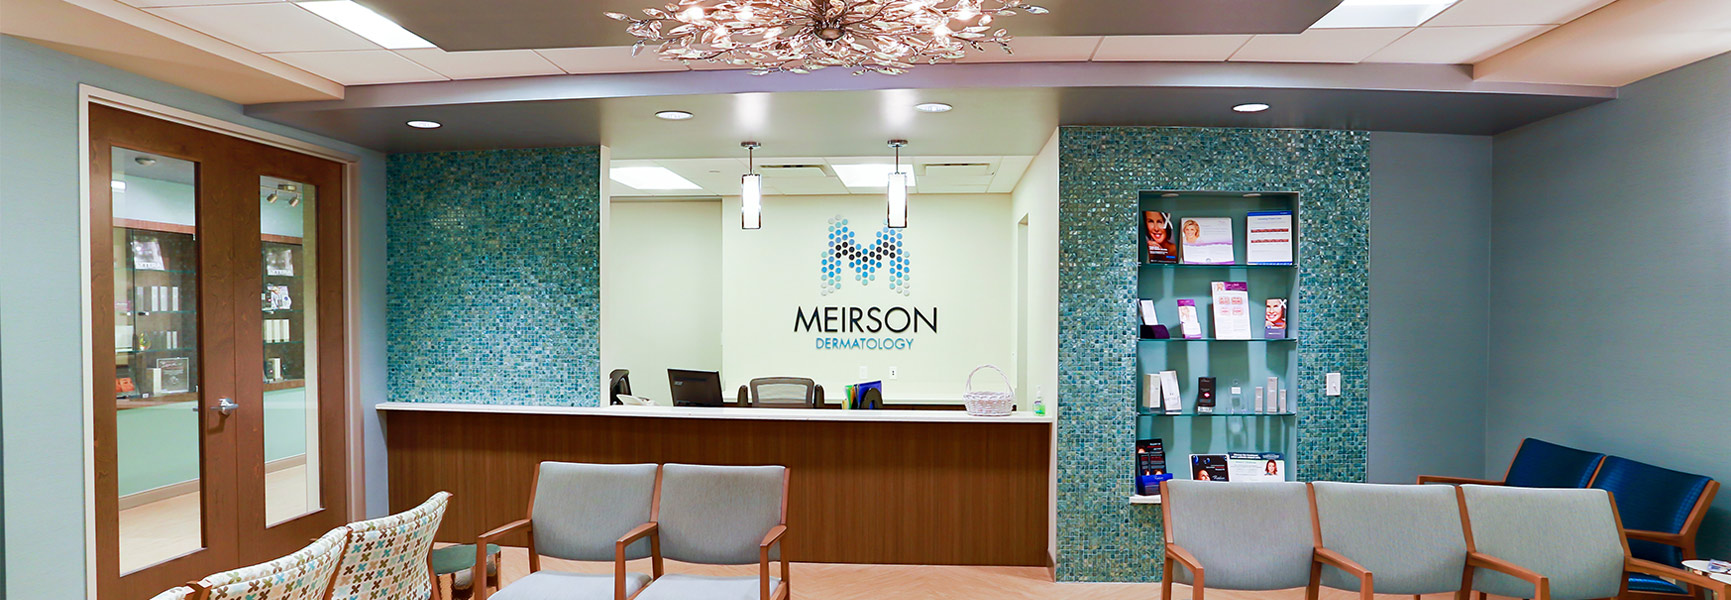 meirson-office-background-3